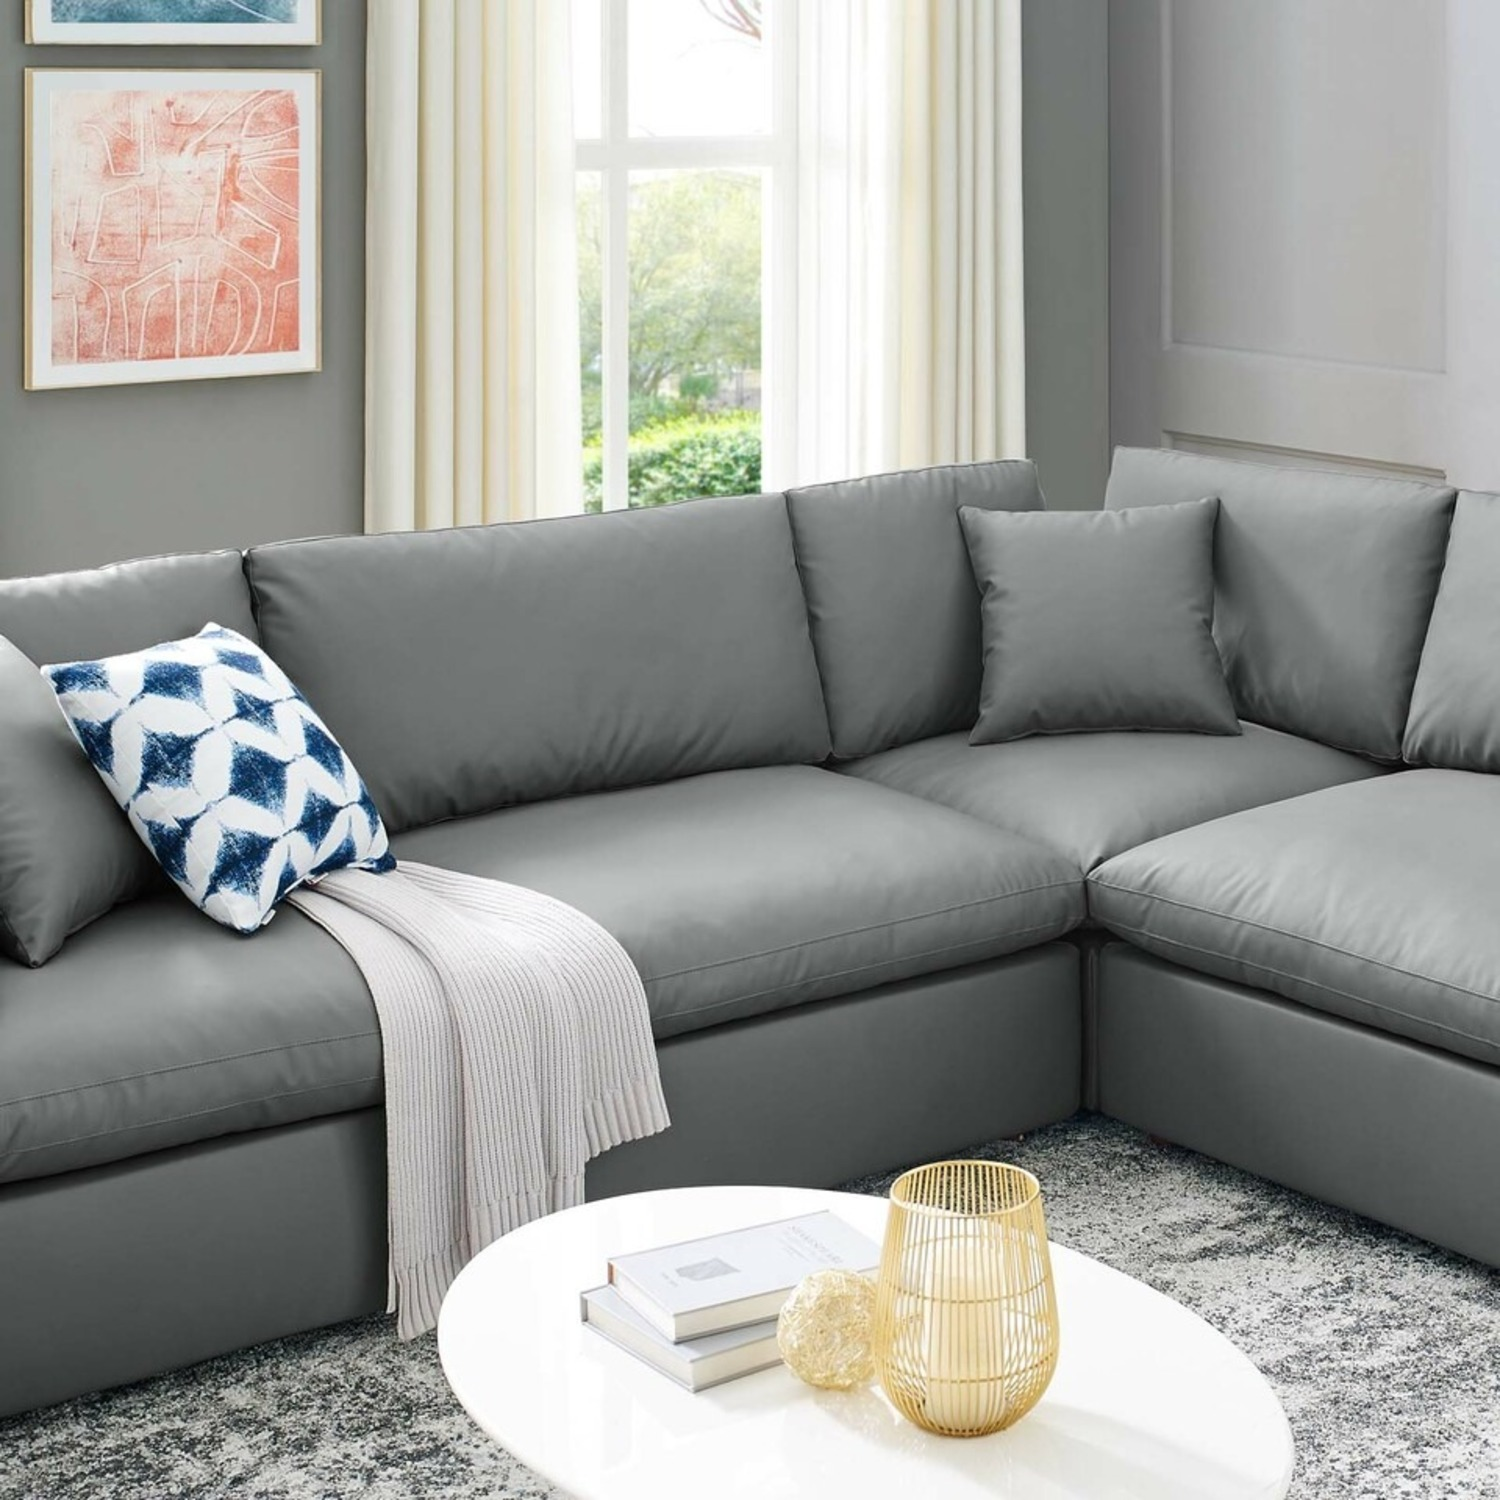 8-Piece Sectional Sofa In Gray Vegan Leather - image-8